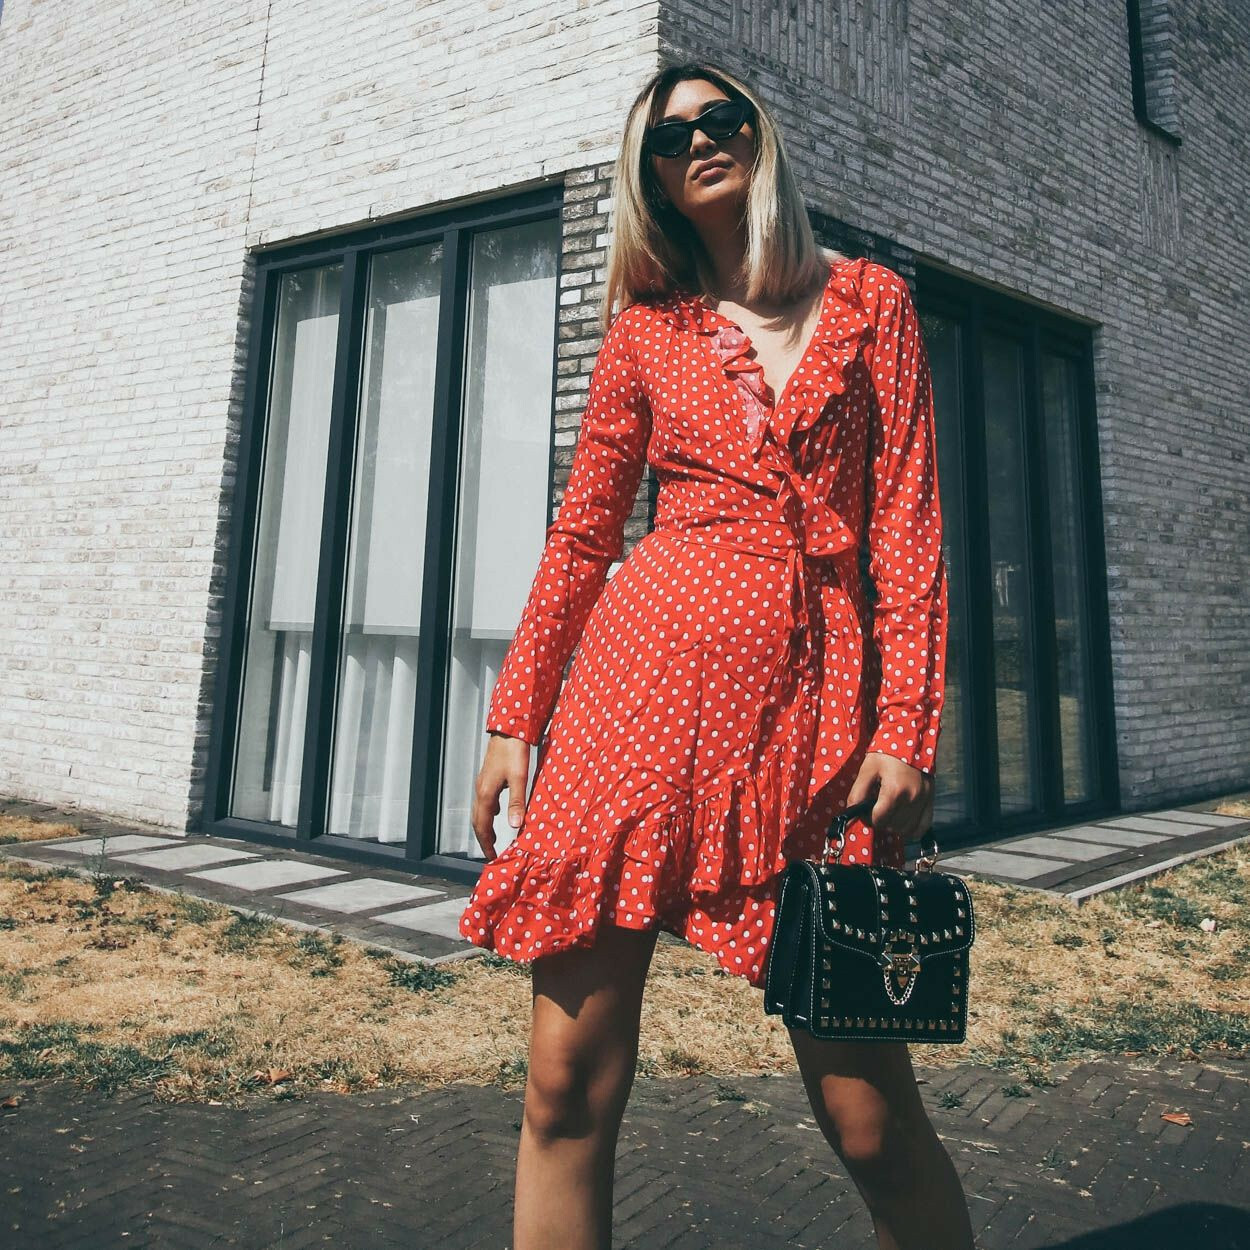 THAT RED DOTTED DRESS